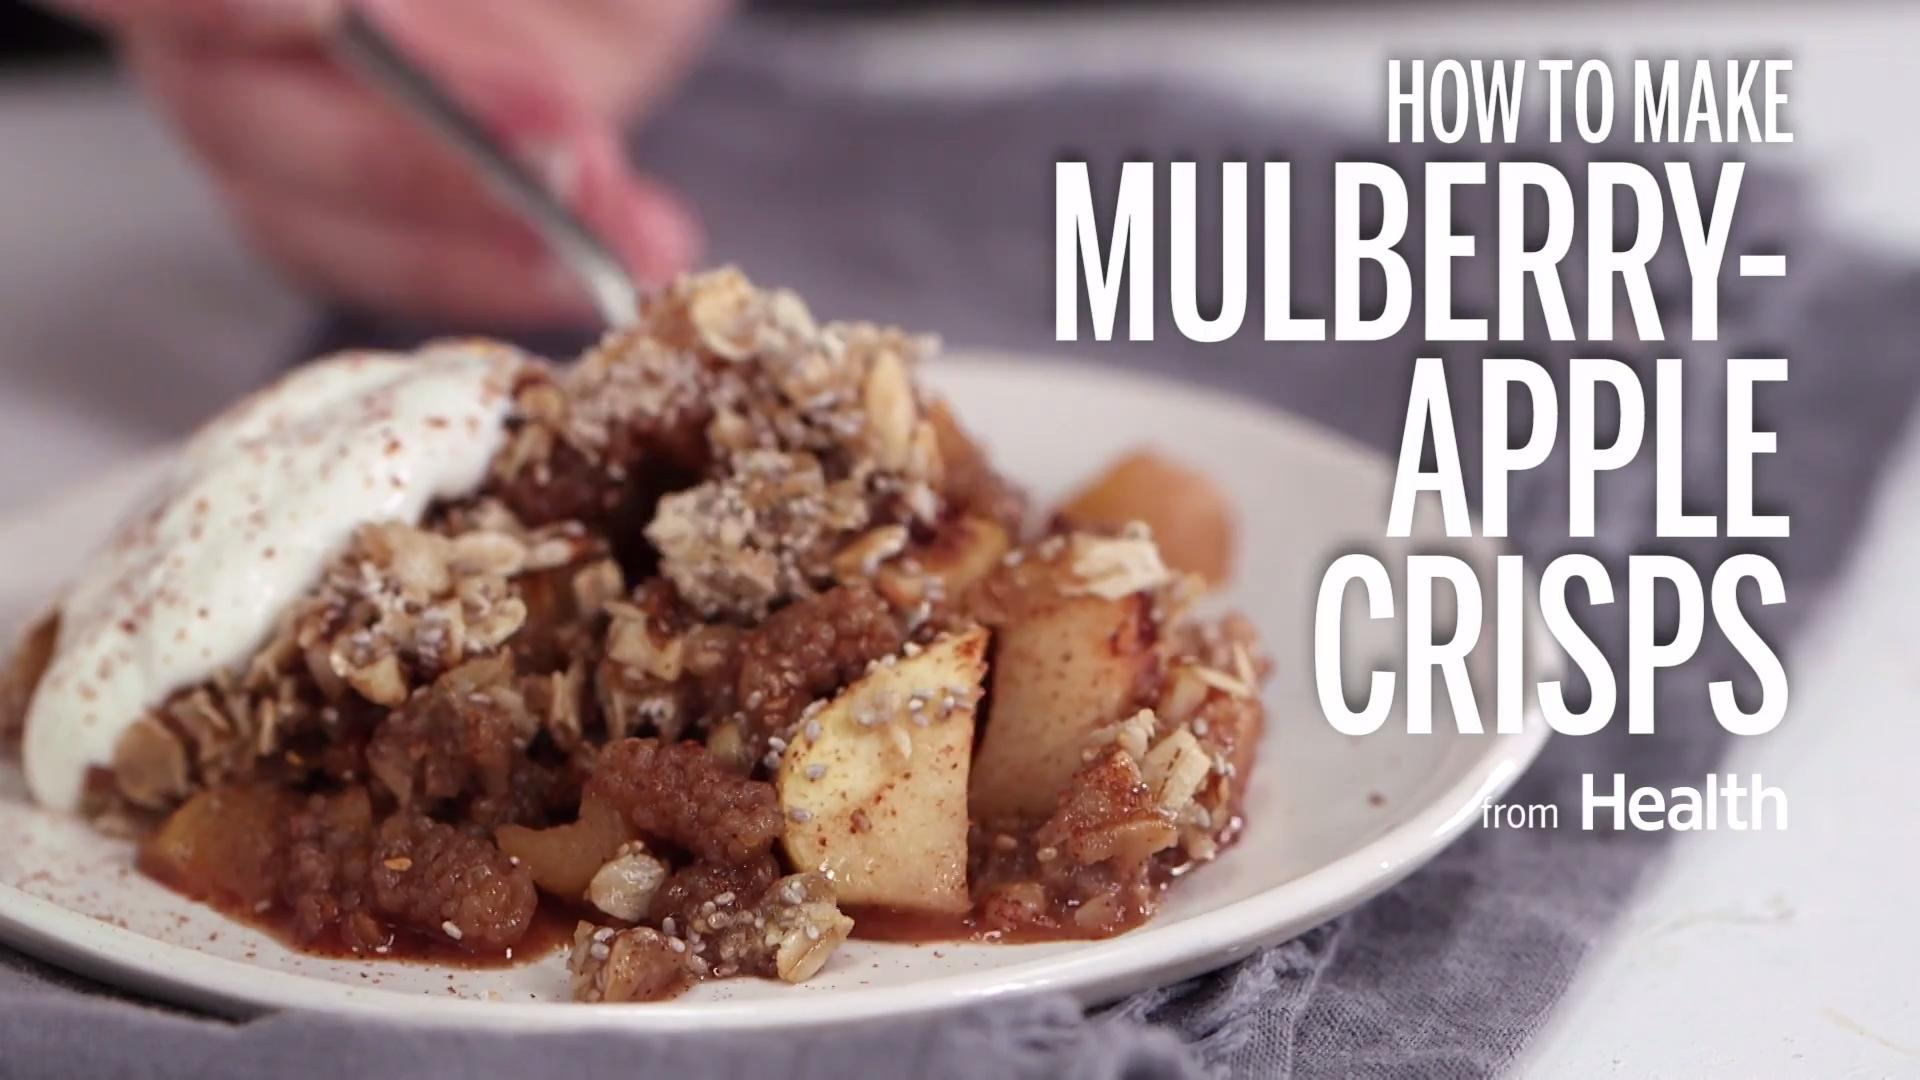 Mulberry-Apple Crisps